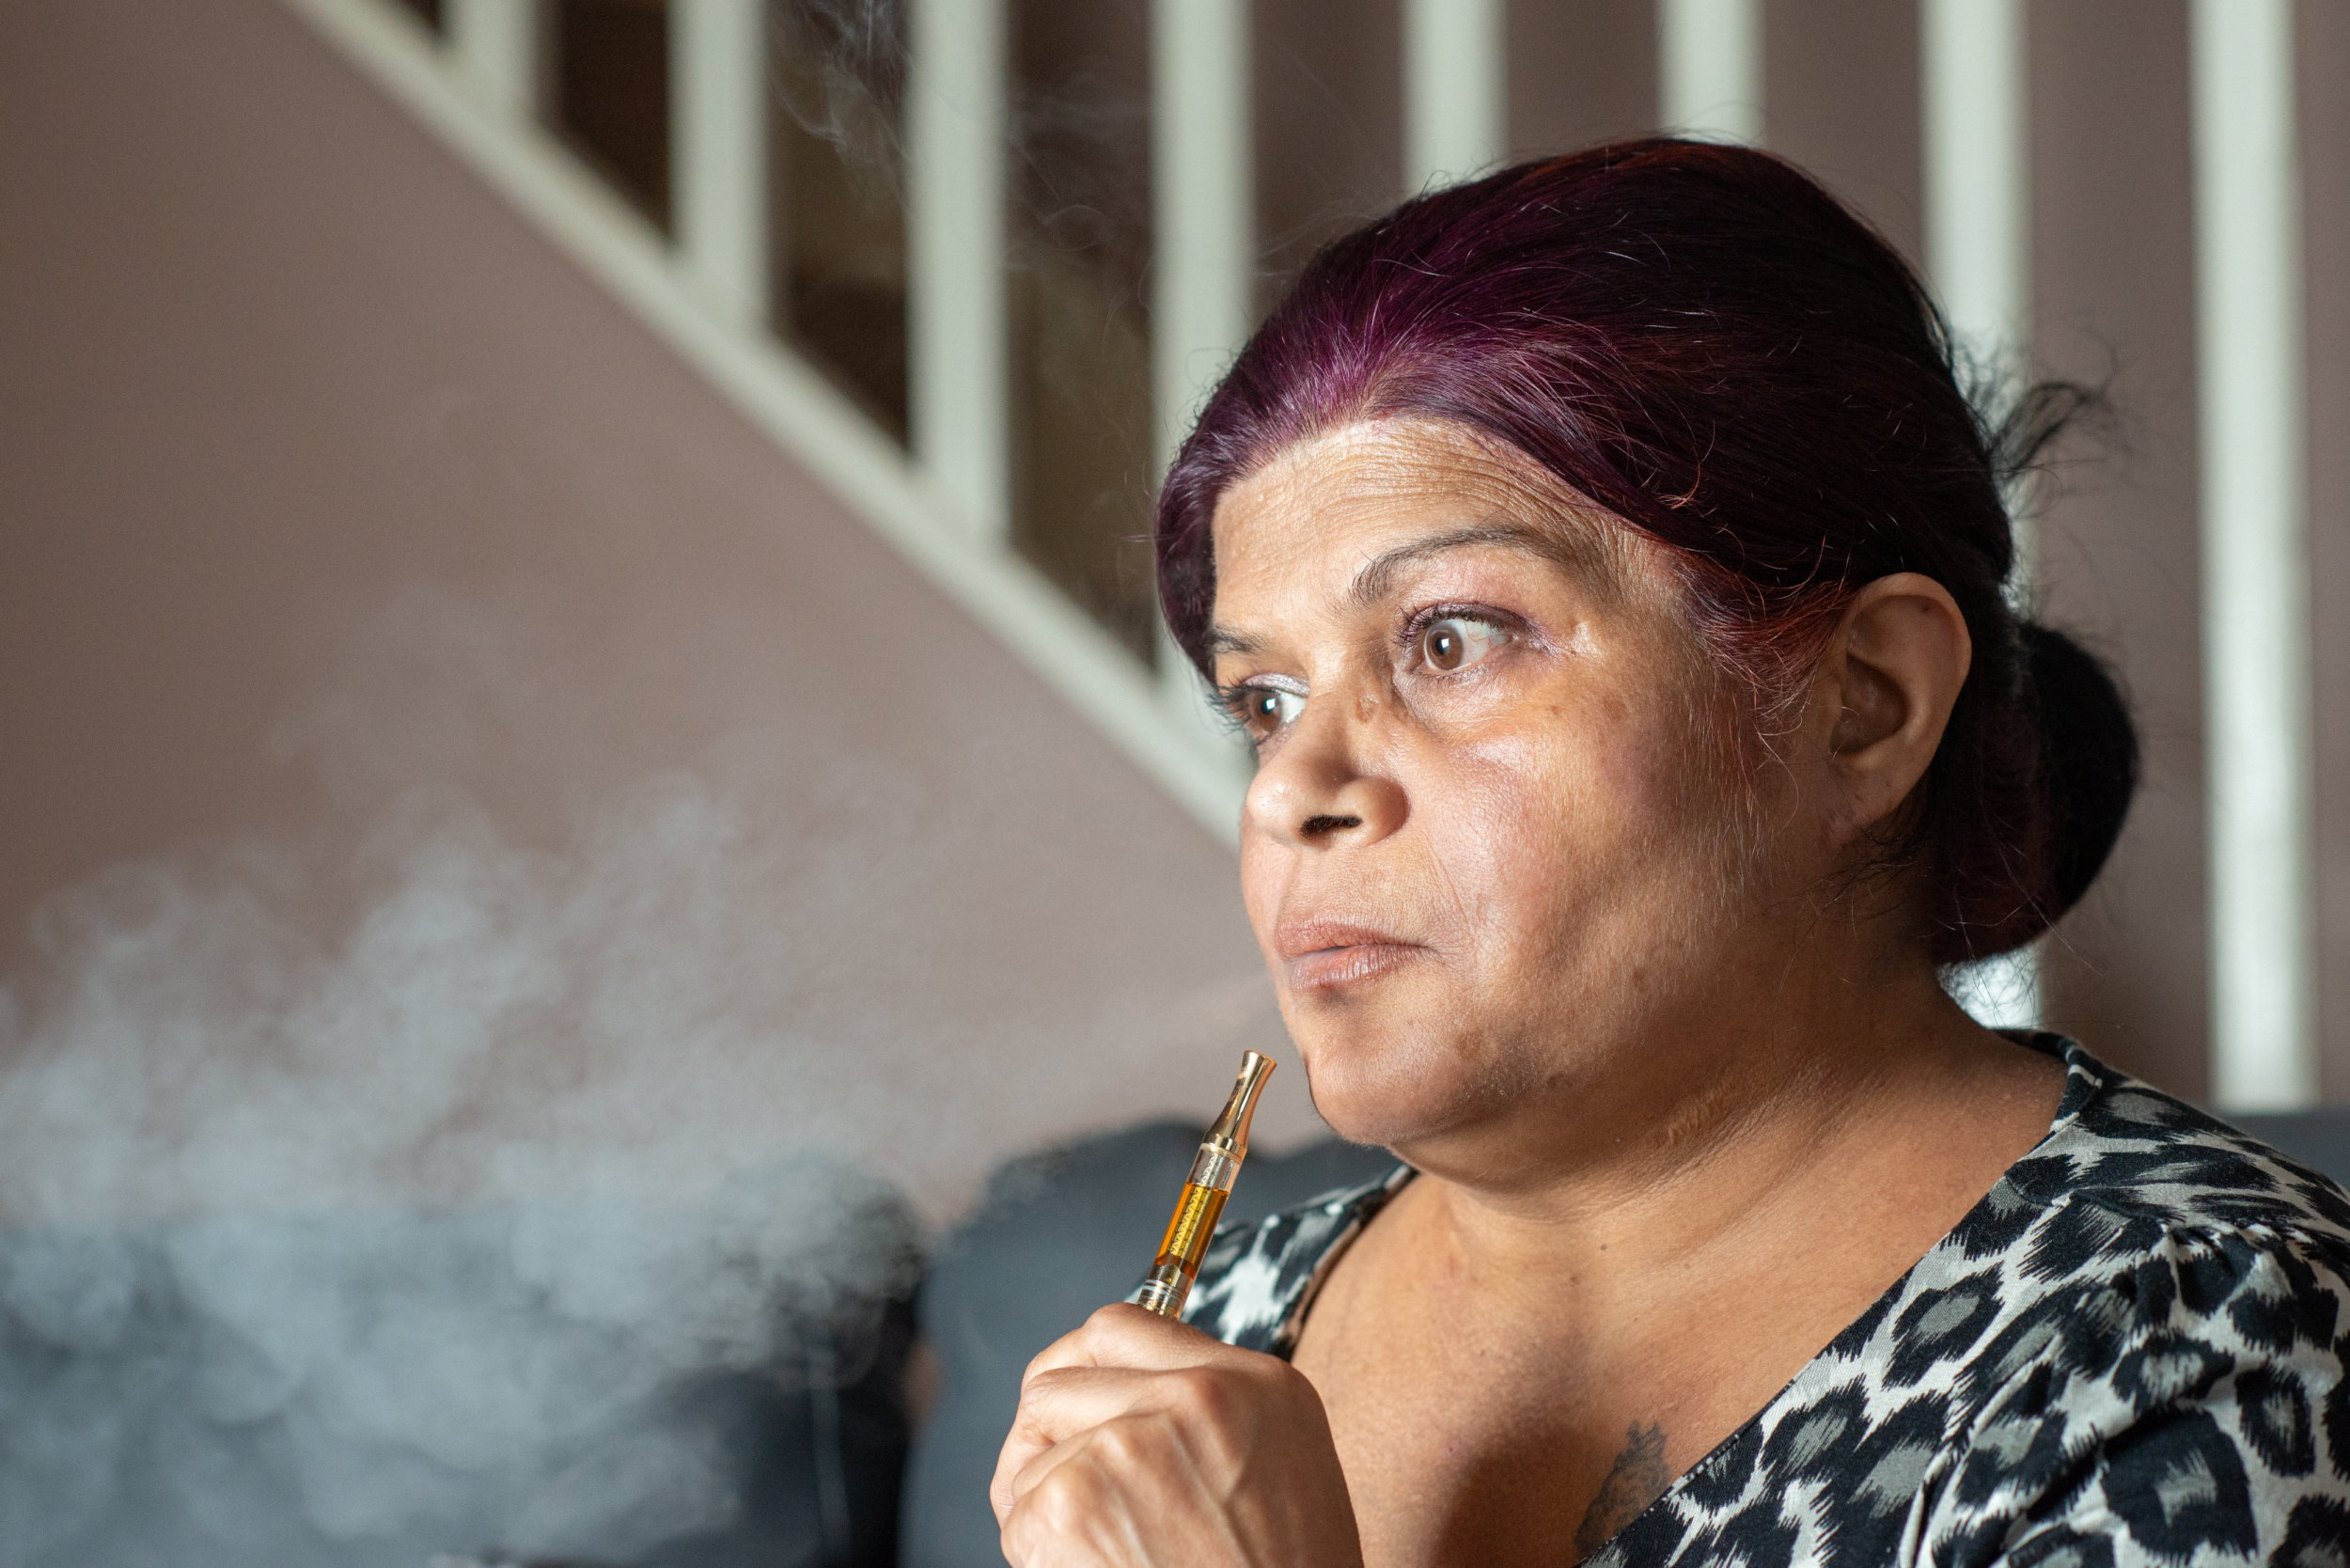 Sue Dhillon smoking from a vape that contains cannabis oil. See SWNS copy SWTPdrug: A mum who was given weeks to live after she shunned chemotherapy has baffled doctors by treating her cancer -- with illegal super strength cannabis and Manuka honey. Susan Dhillon, 51, a mum-of-three, was diagnosed with inoperable stage four cancer of the mouth, nose and lower skull in June 2018. Doctors said unless she had chemotherapy - and then incredibly risky facial surgery - her only option was end of life care.